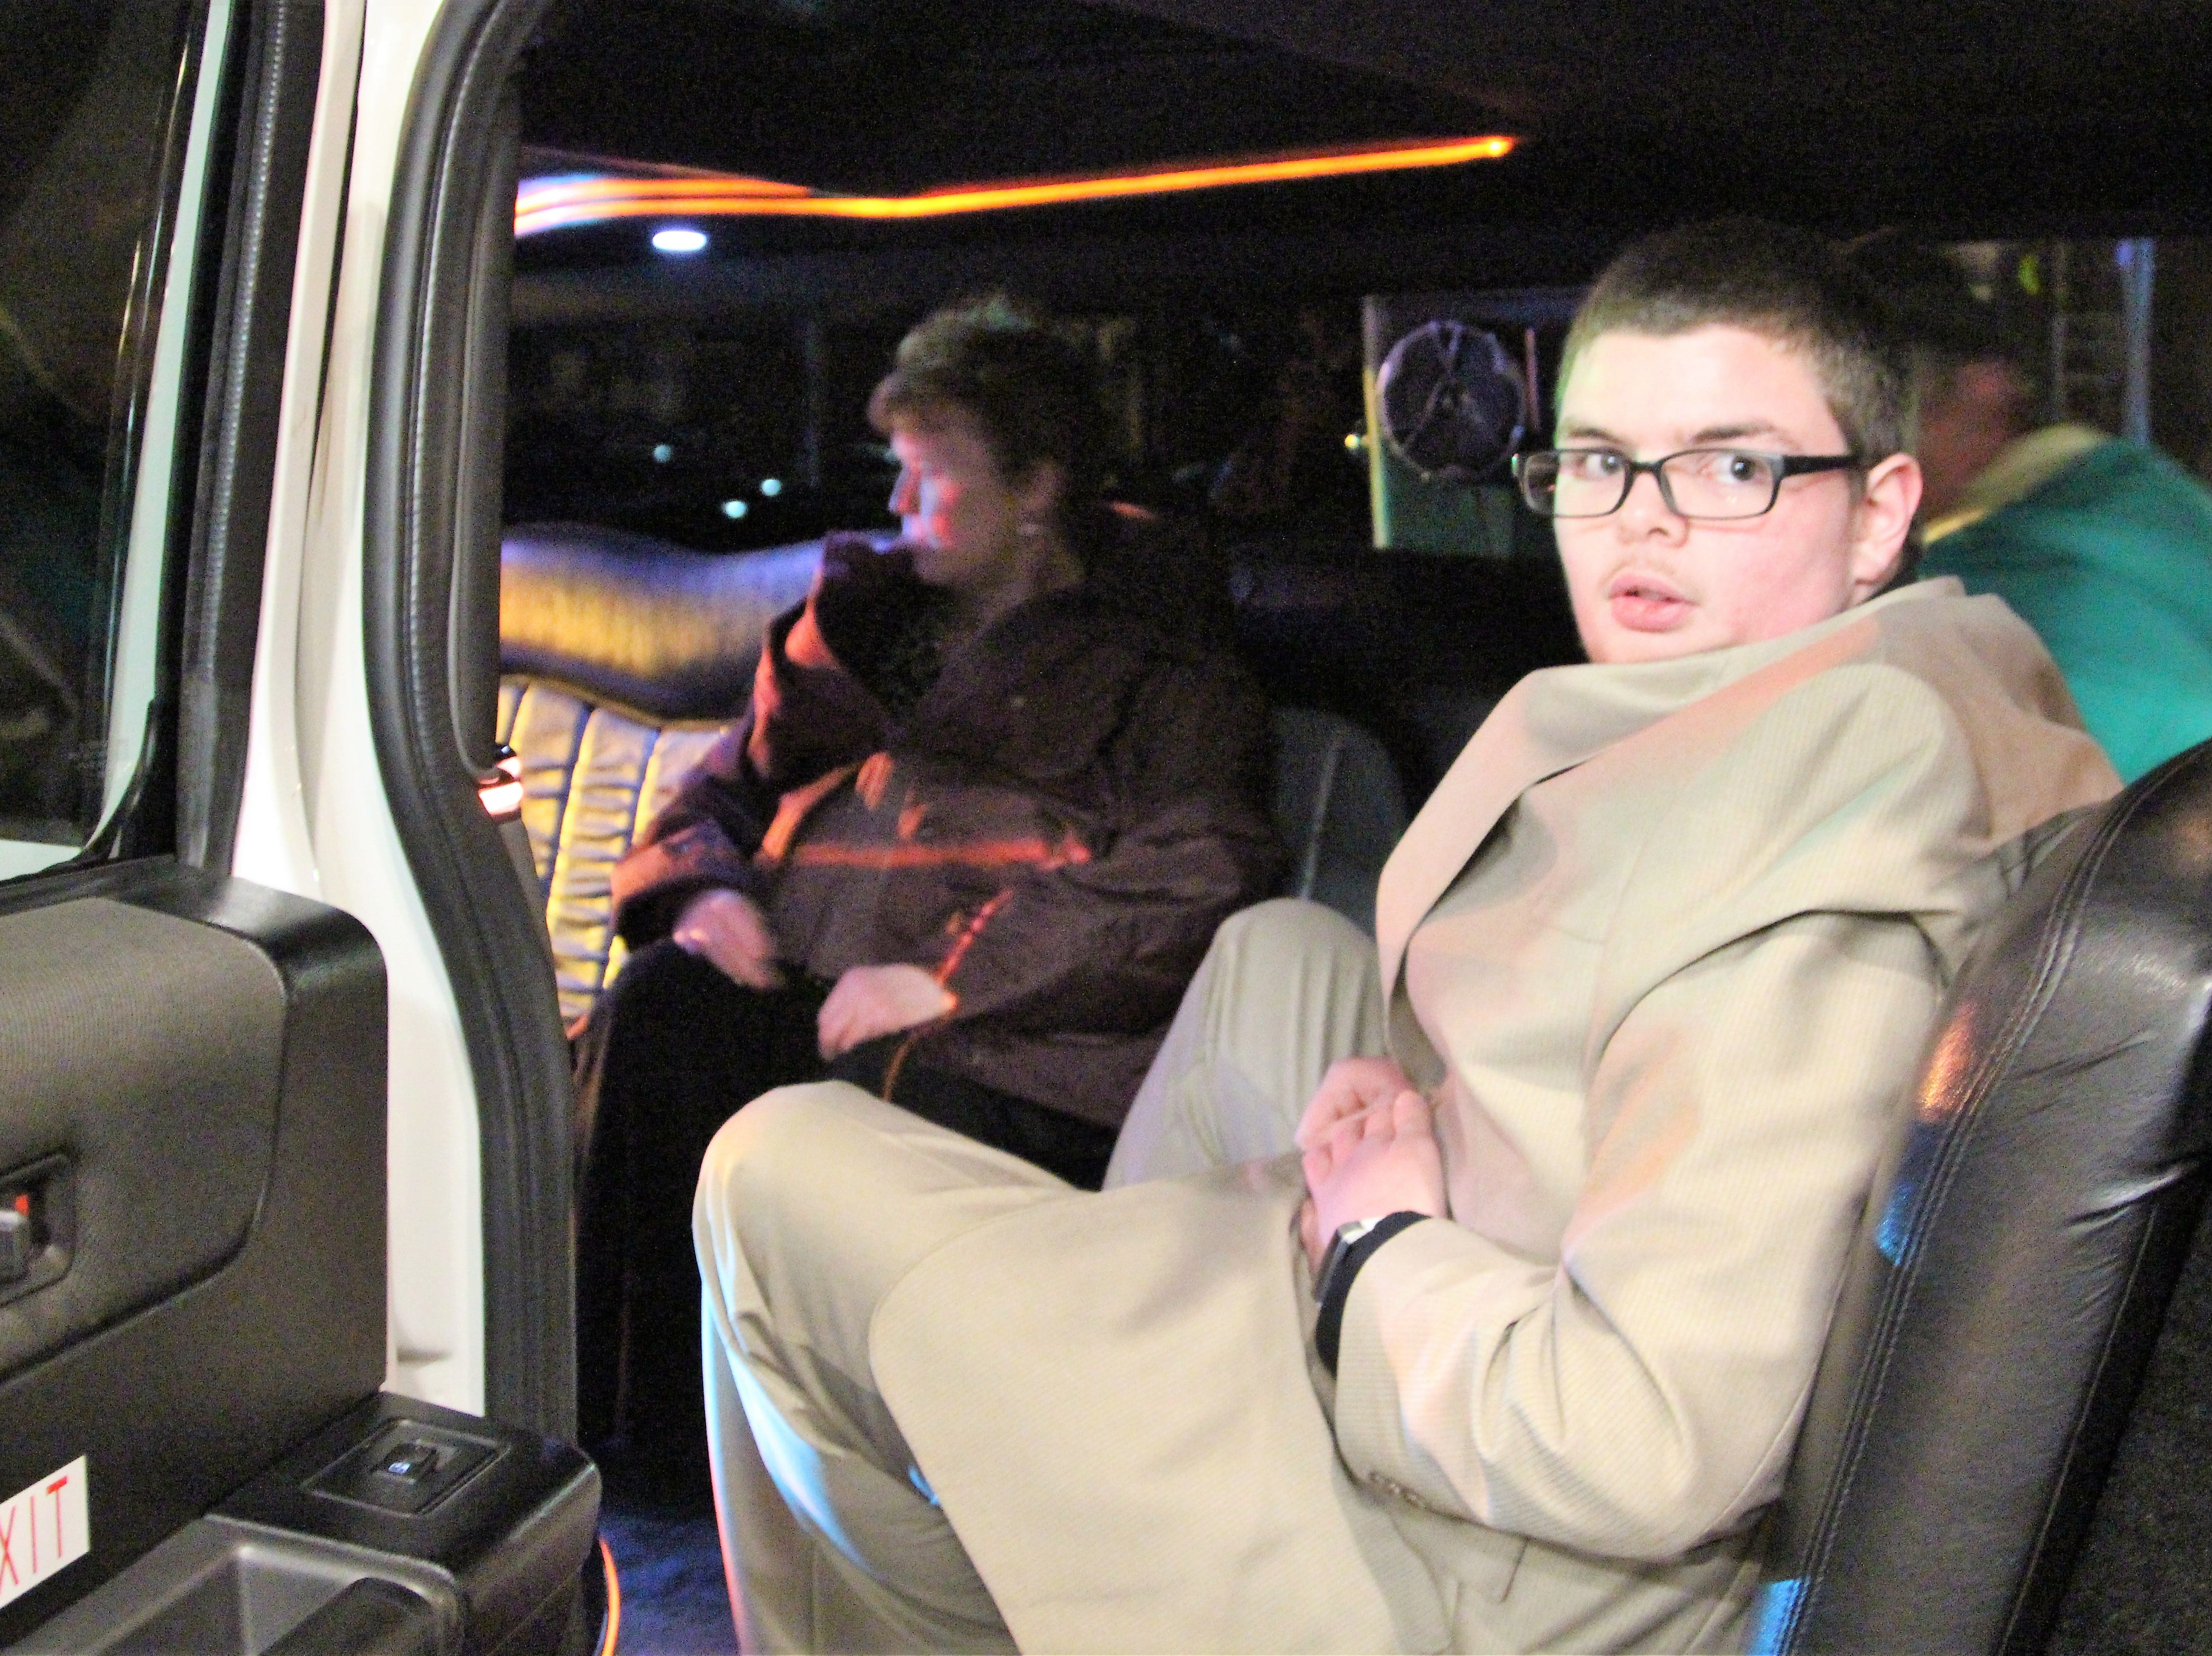 """Presden Deal, a Elgin High School senior, sits inside a limousine. He was driven up to a red carpet where he was met by volunteer """"paparazzi."""""""